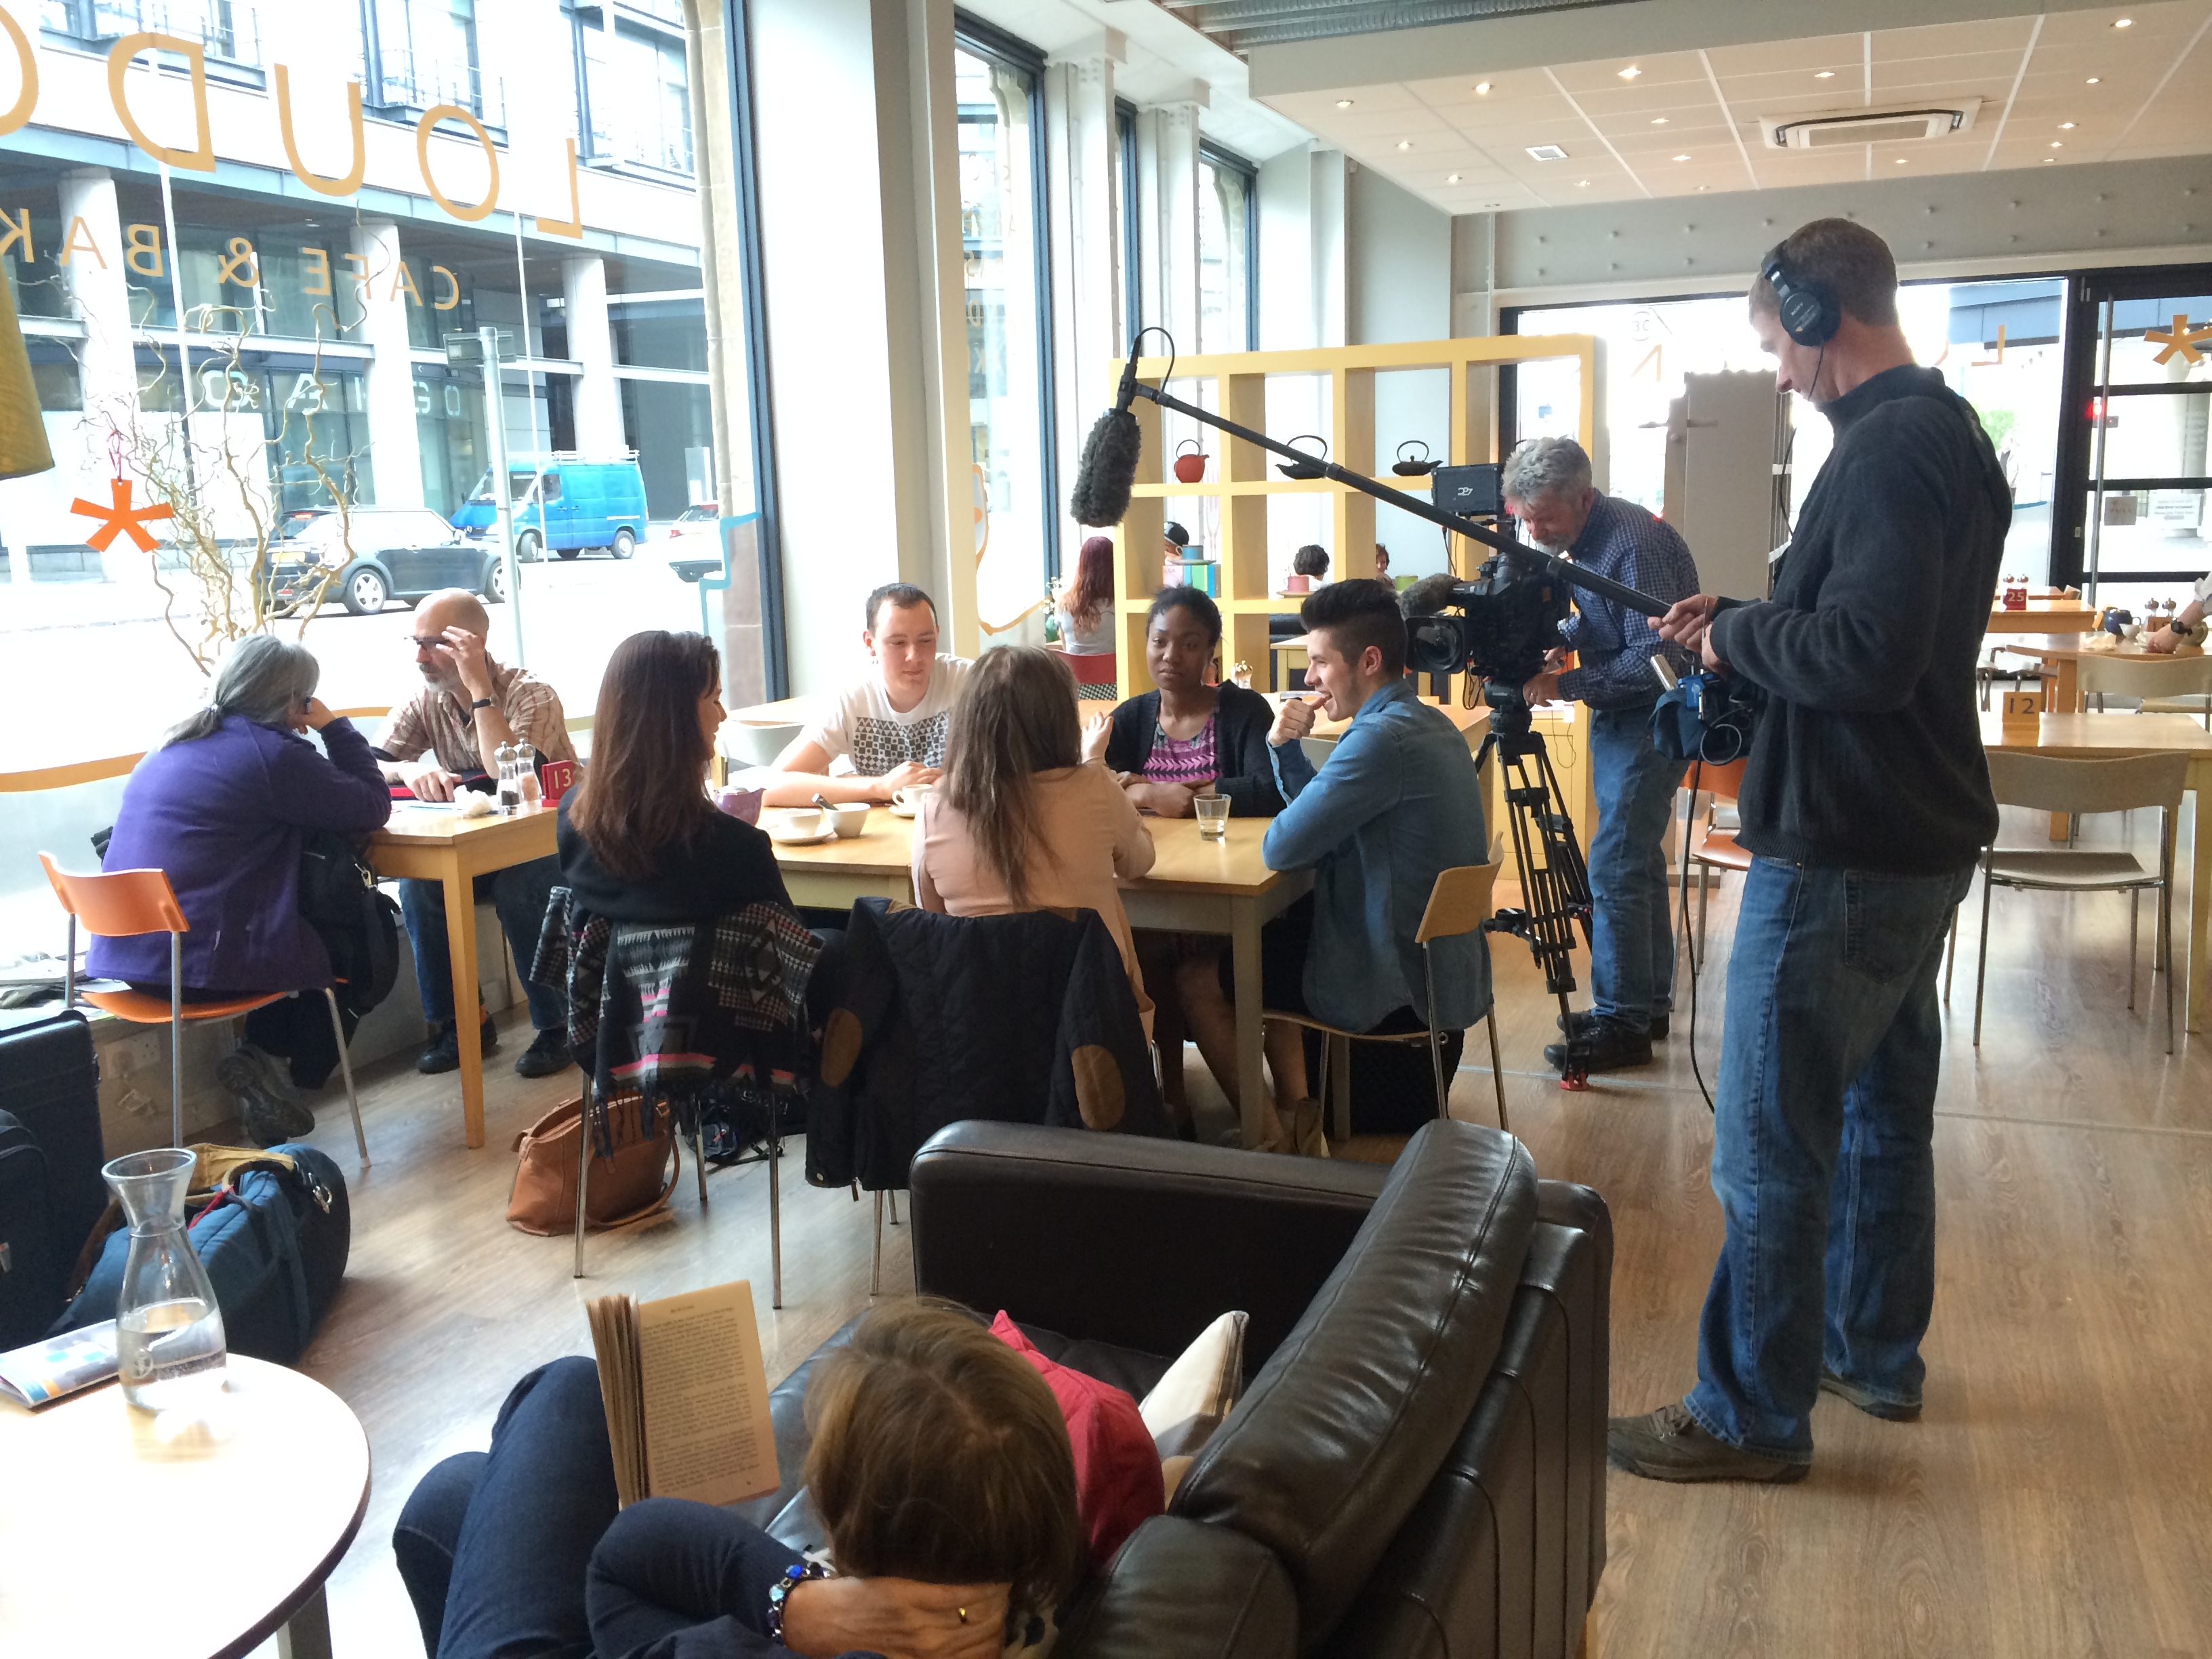 The 'student' scene is shot in Loudon Cafe, Fountainbridge.